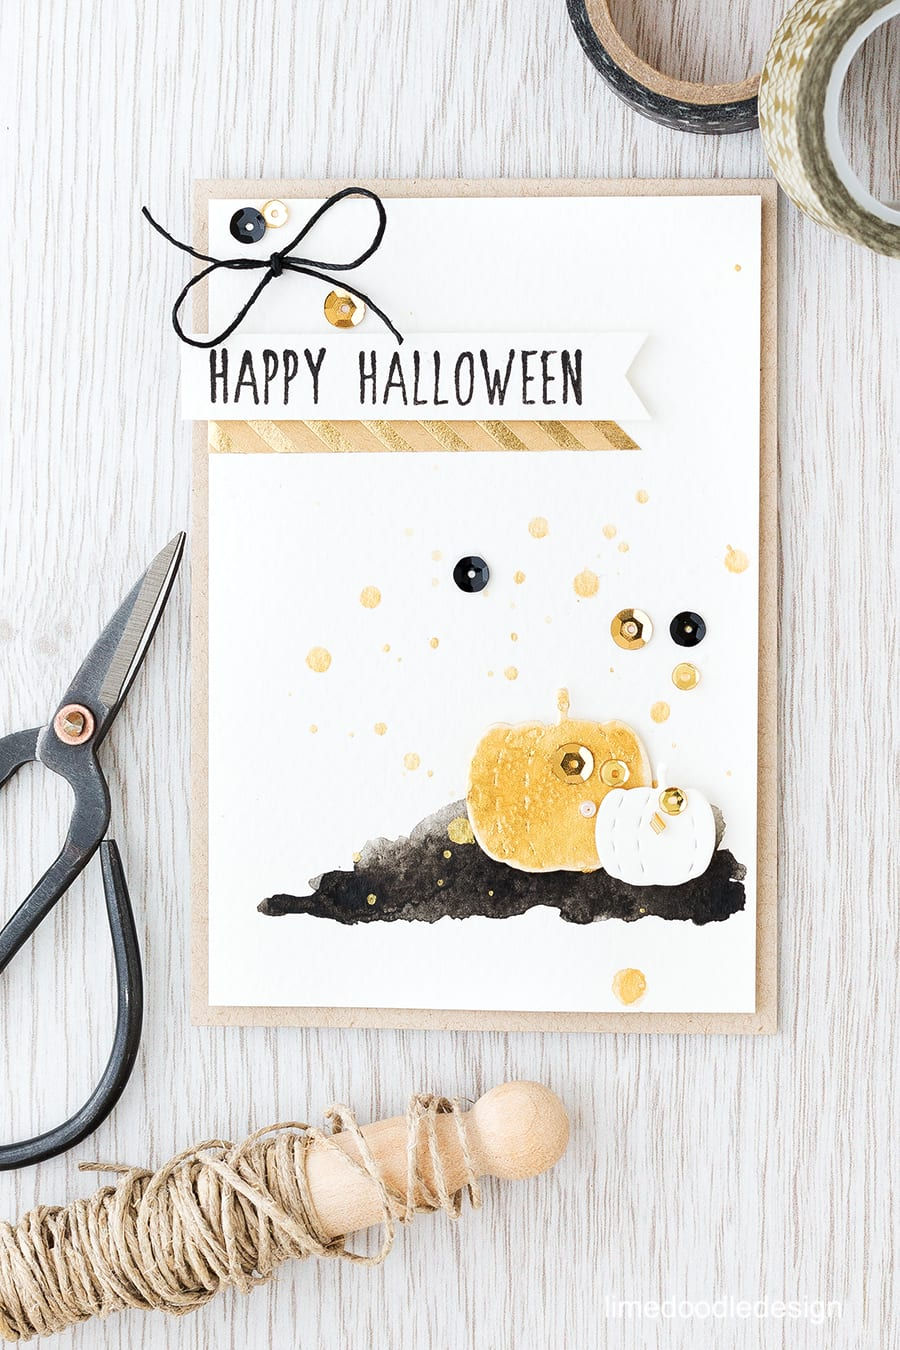 The lover of soft neutrals in me is drawn towards Halloween decor which concentrates on neutrals, black and gold. I used these Stitched Pumpkin dies to create a gold gourd. Find out more by clicking the following link: http://limedoodledesign.com/2015/10/gold-gourd/